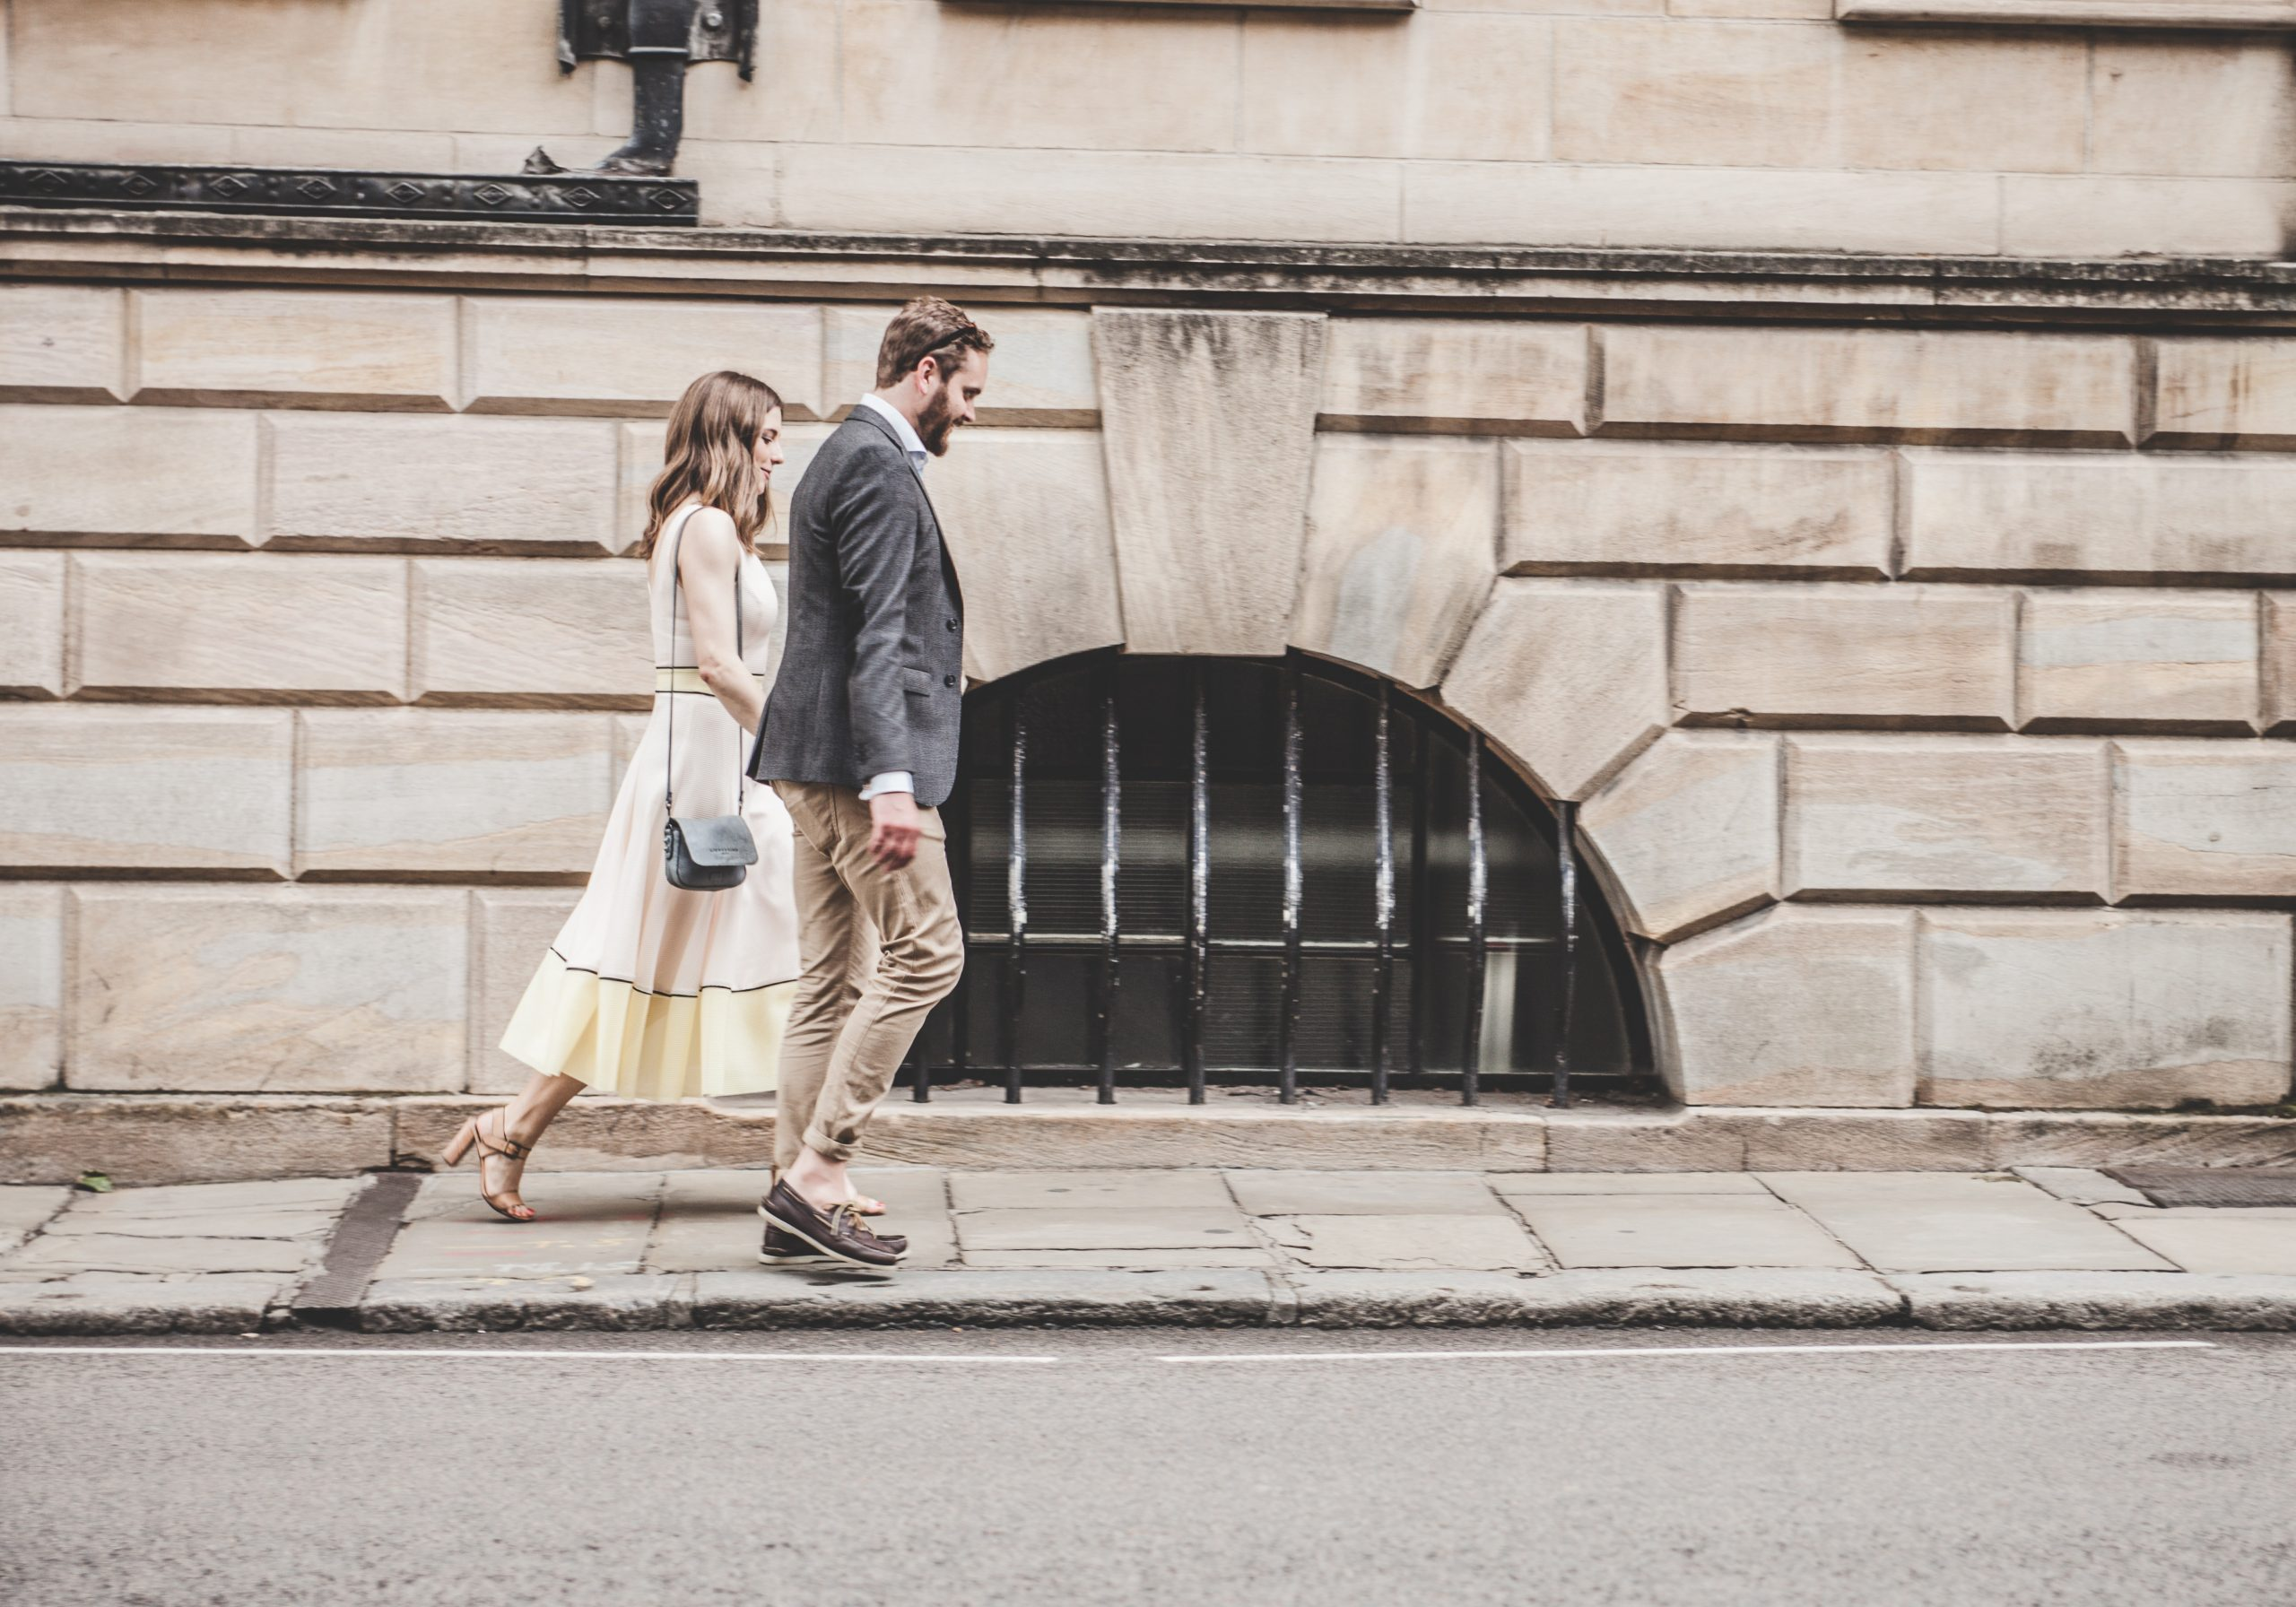 man and woman in formal clothes walking in city